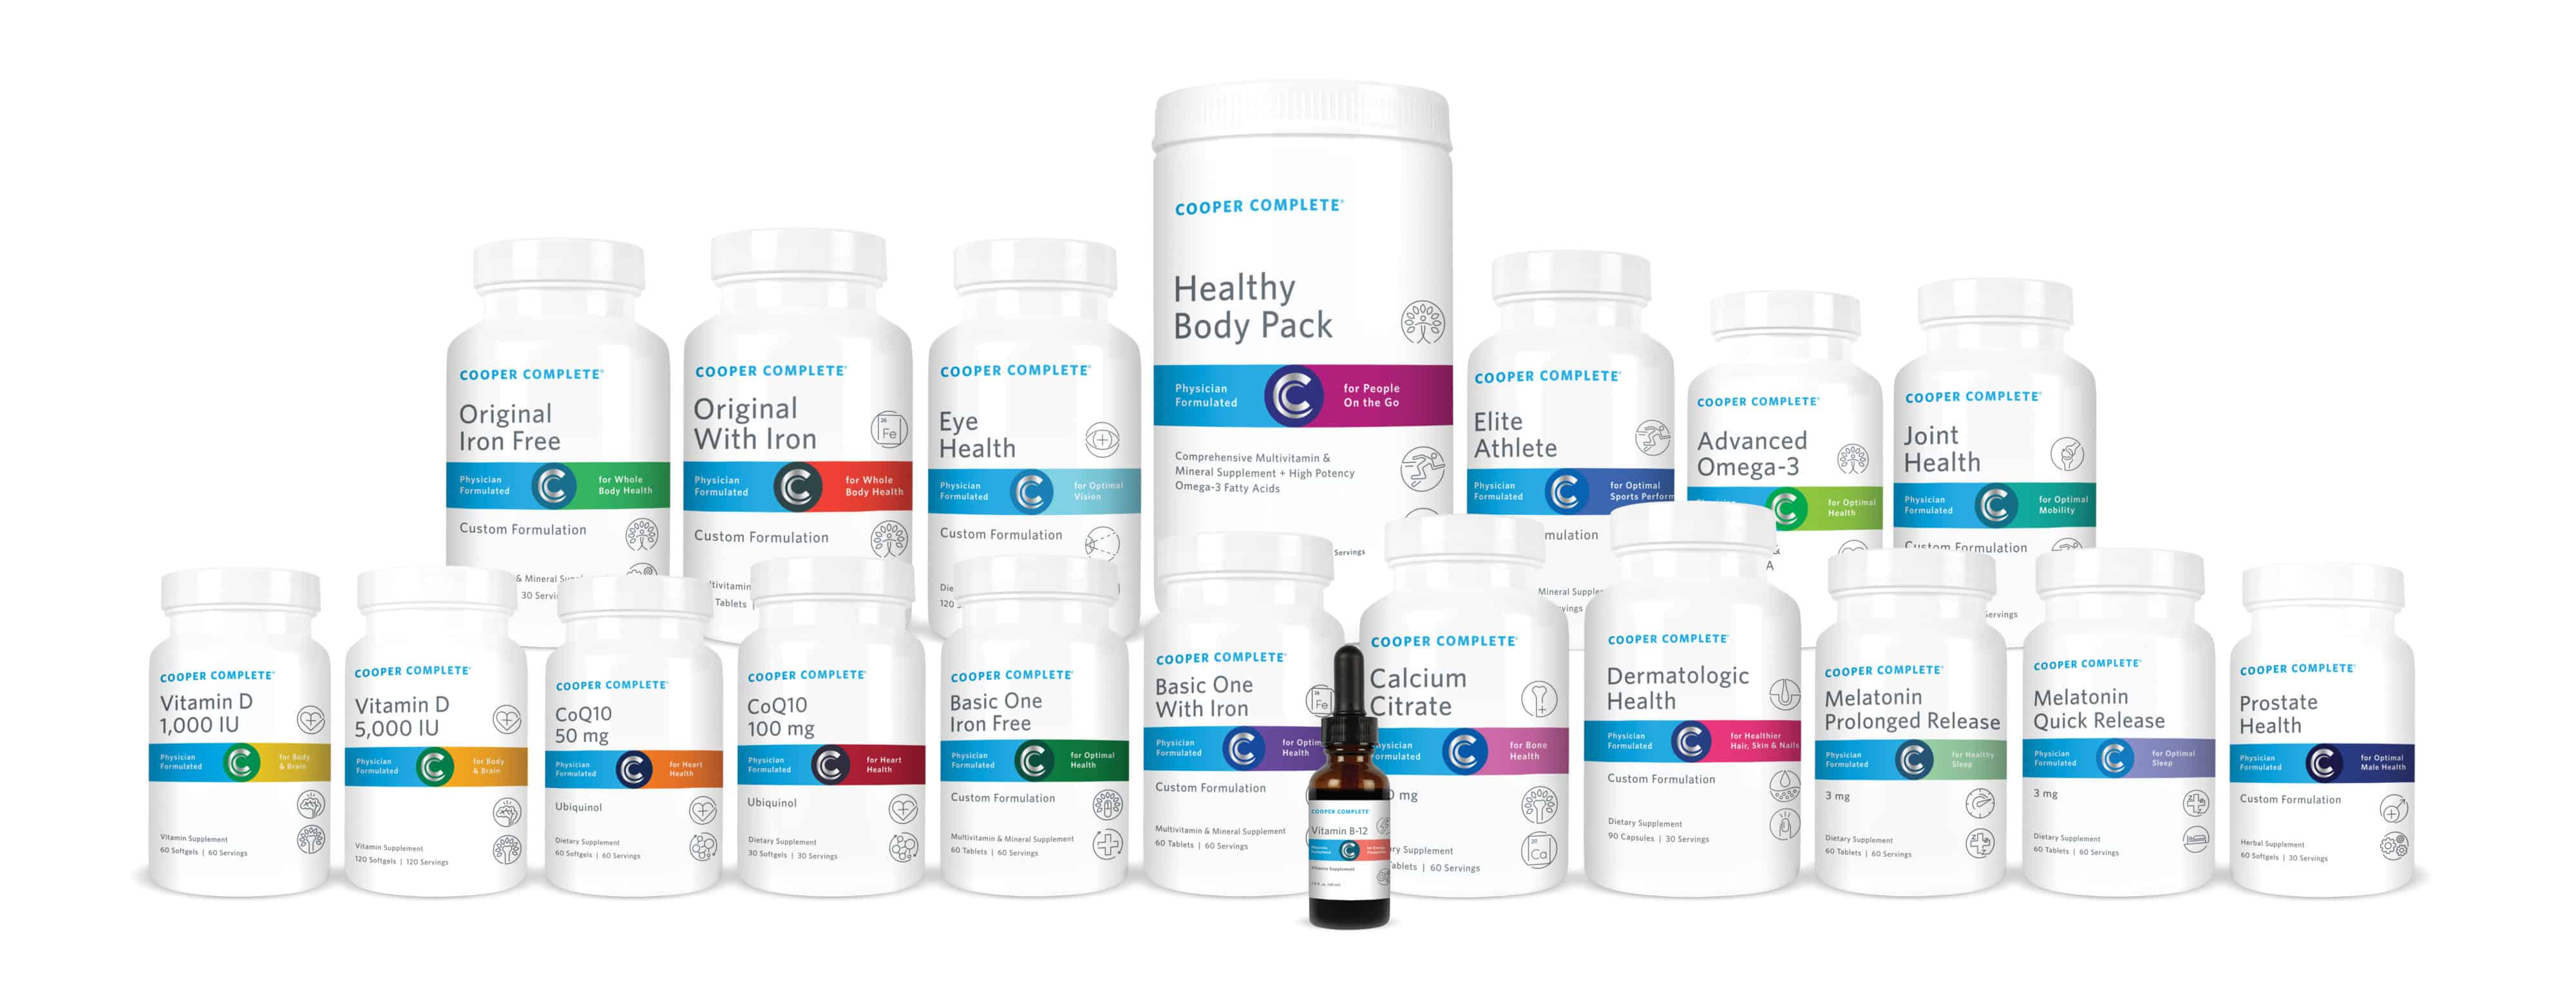 Photo of Cooper Complete bottles - Click here to Buy Cooper Complete Supplements